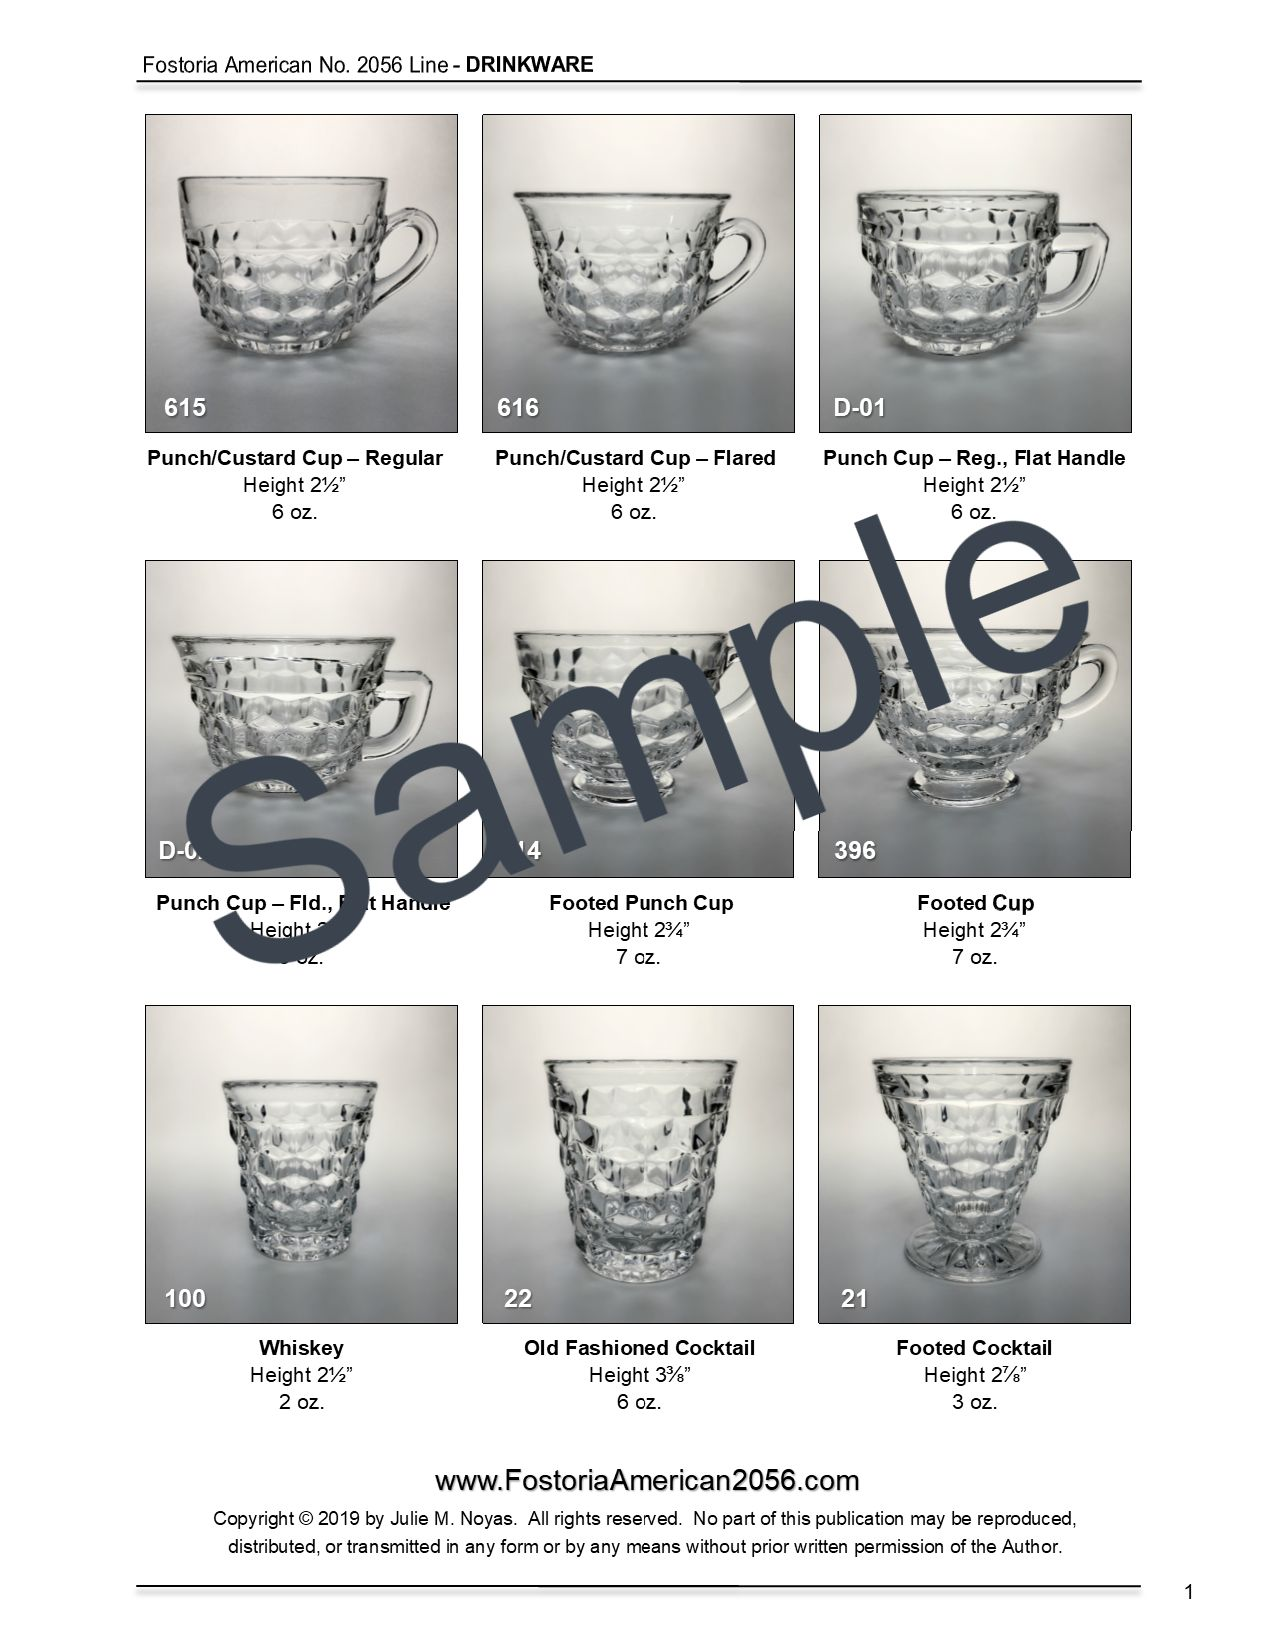 Fostoria American Drinkware PDF Report Sample